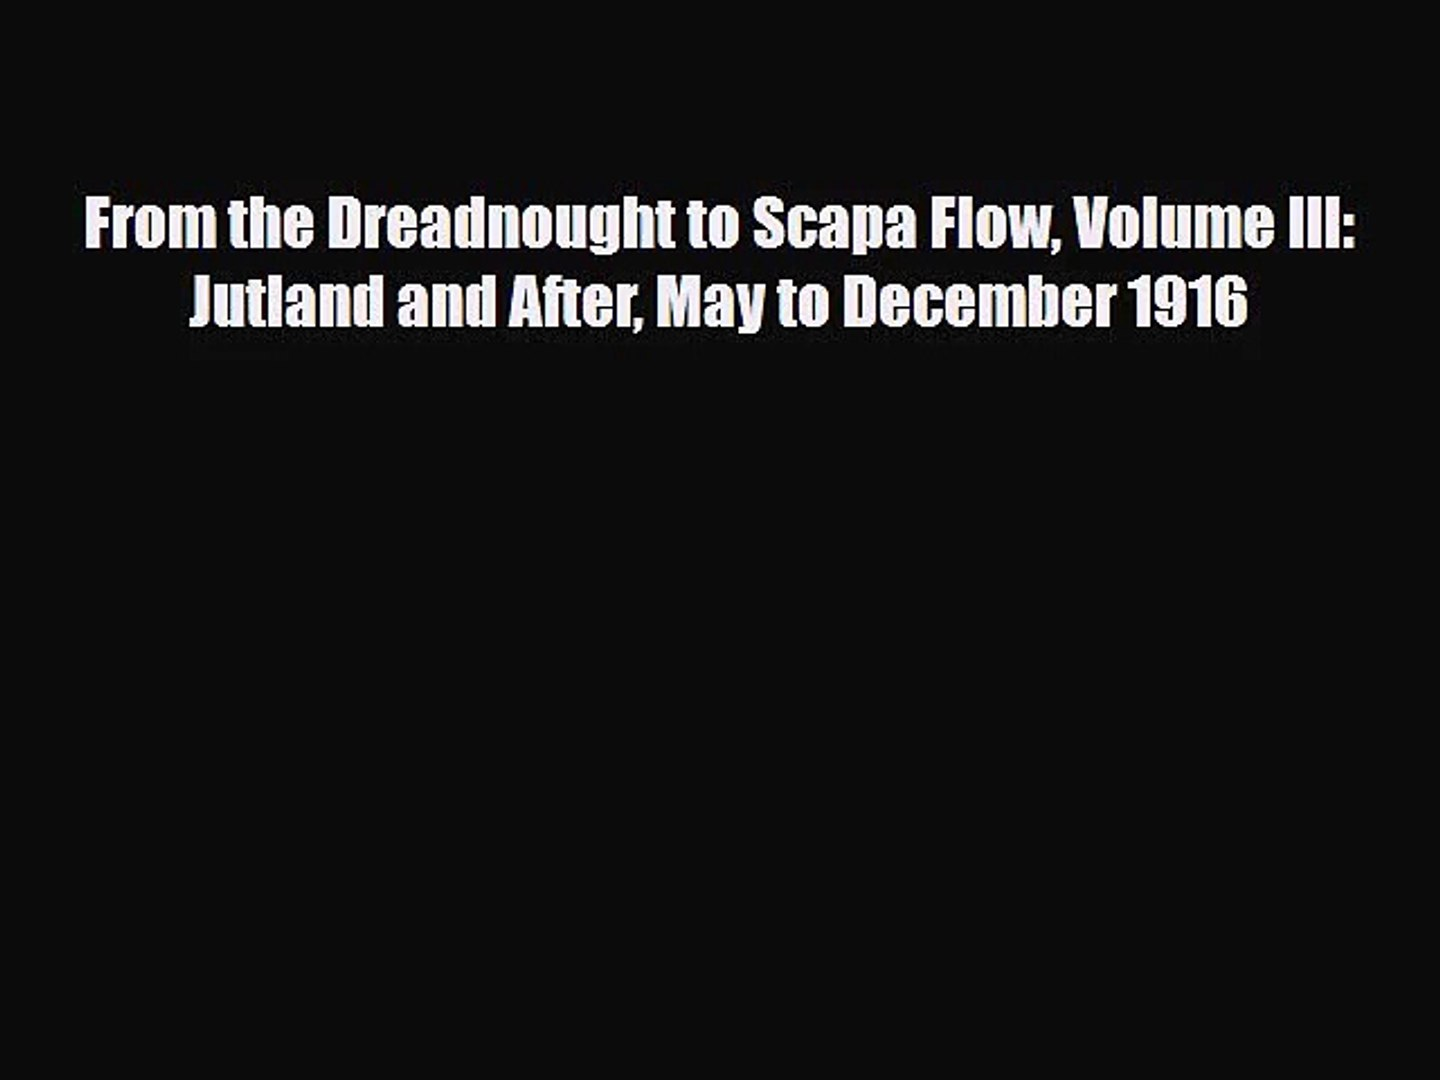 From the Dreadnought to Scapa Flow Volume III: Jutland and After May to December 1916 [Download]